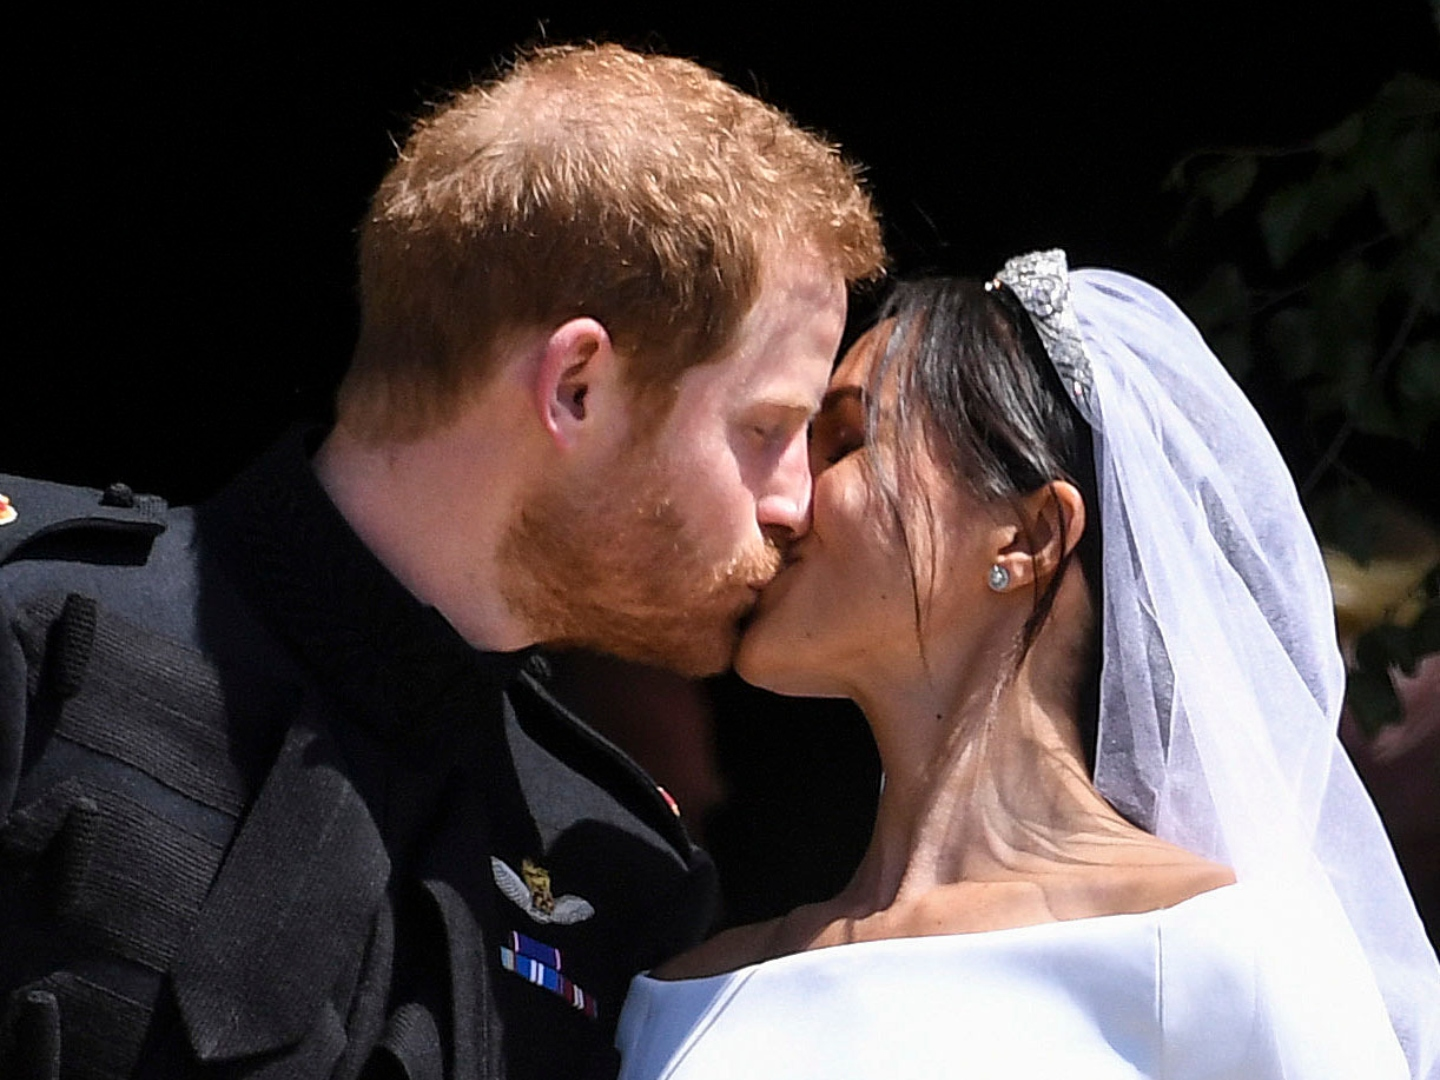 prince harry married for love unlike father prince charles mom diana sheknows sheknows